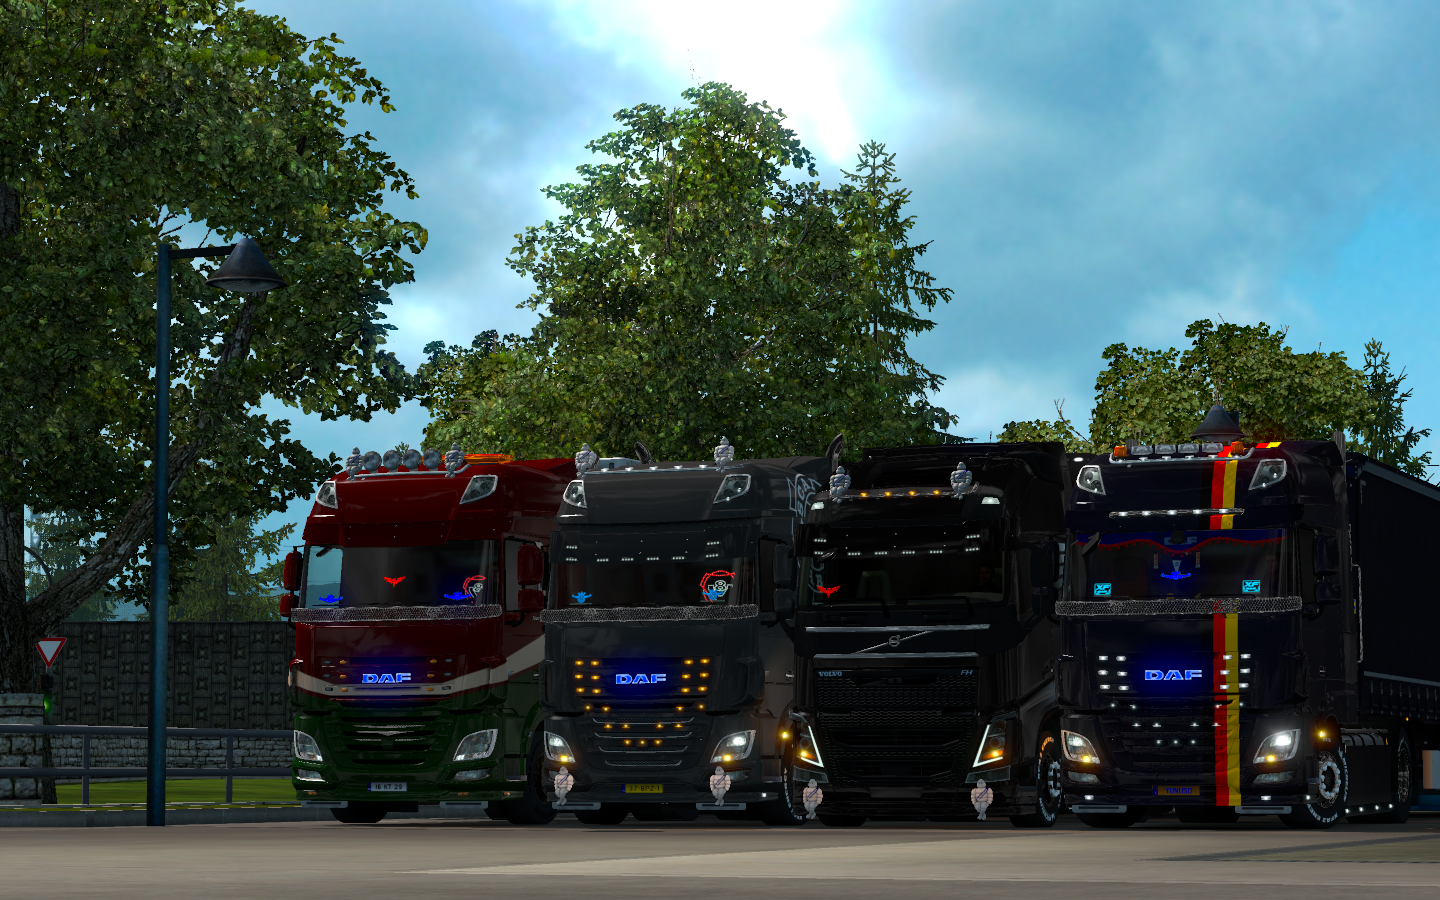 ets2_20190526_155006_00.png